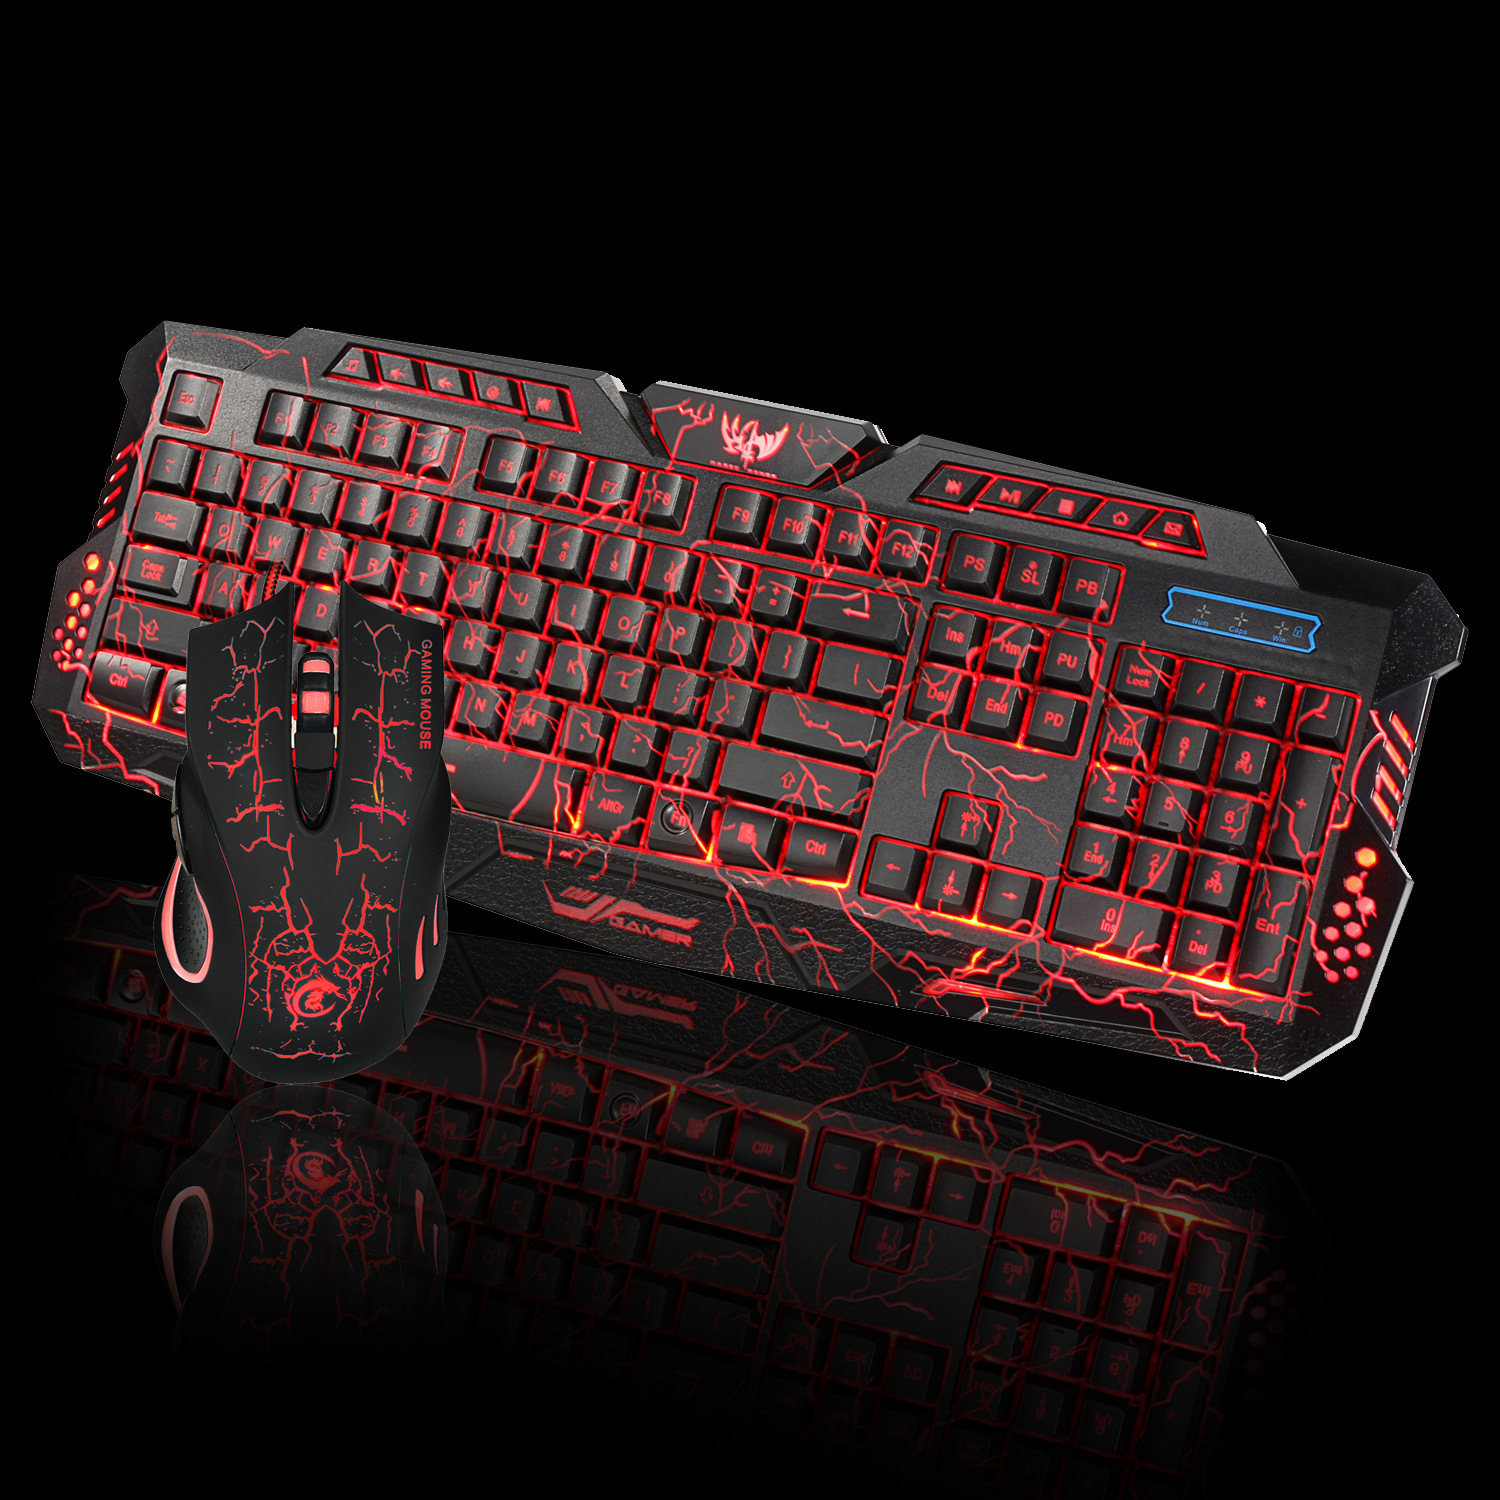 J10 6 Key 5500dpi Gaming Mouse and Three-color Backlight English / Russian Gaming Keyboard Set ...